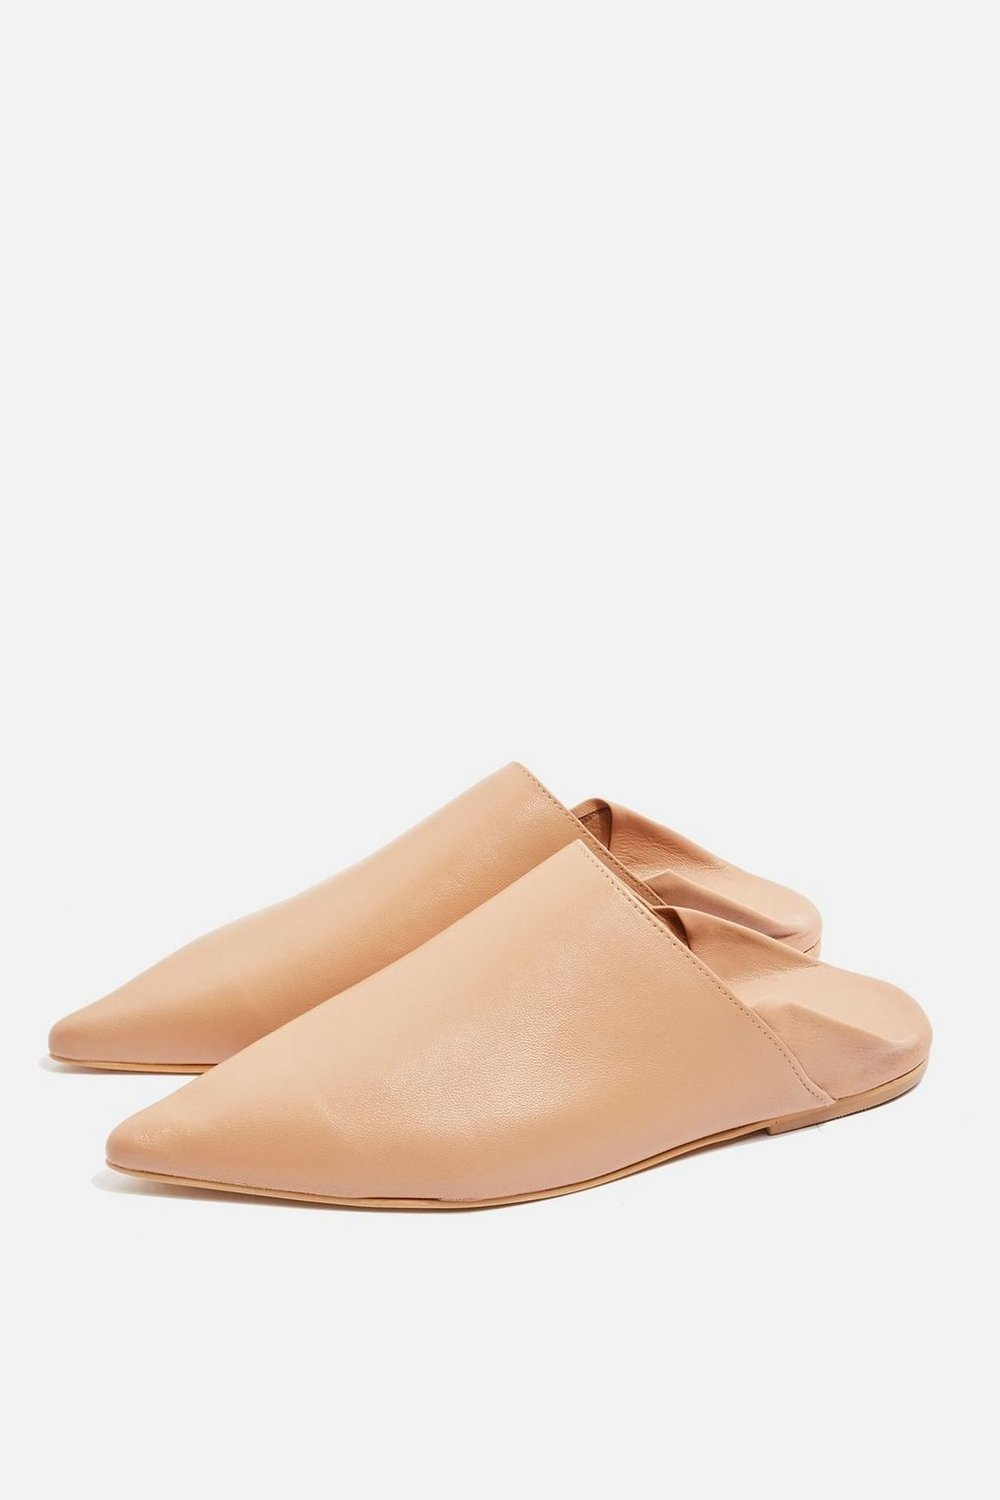 Keeper Clean Mules